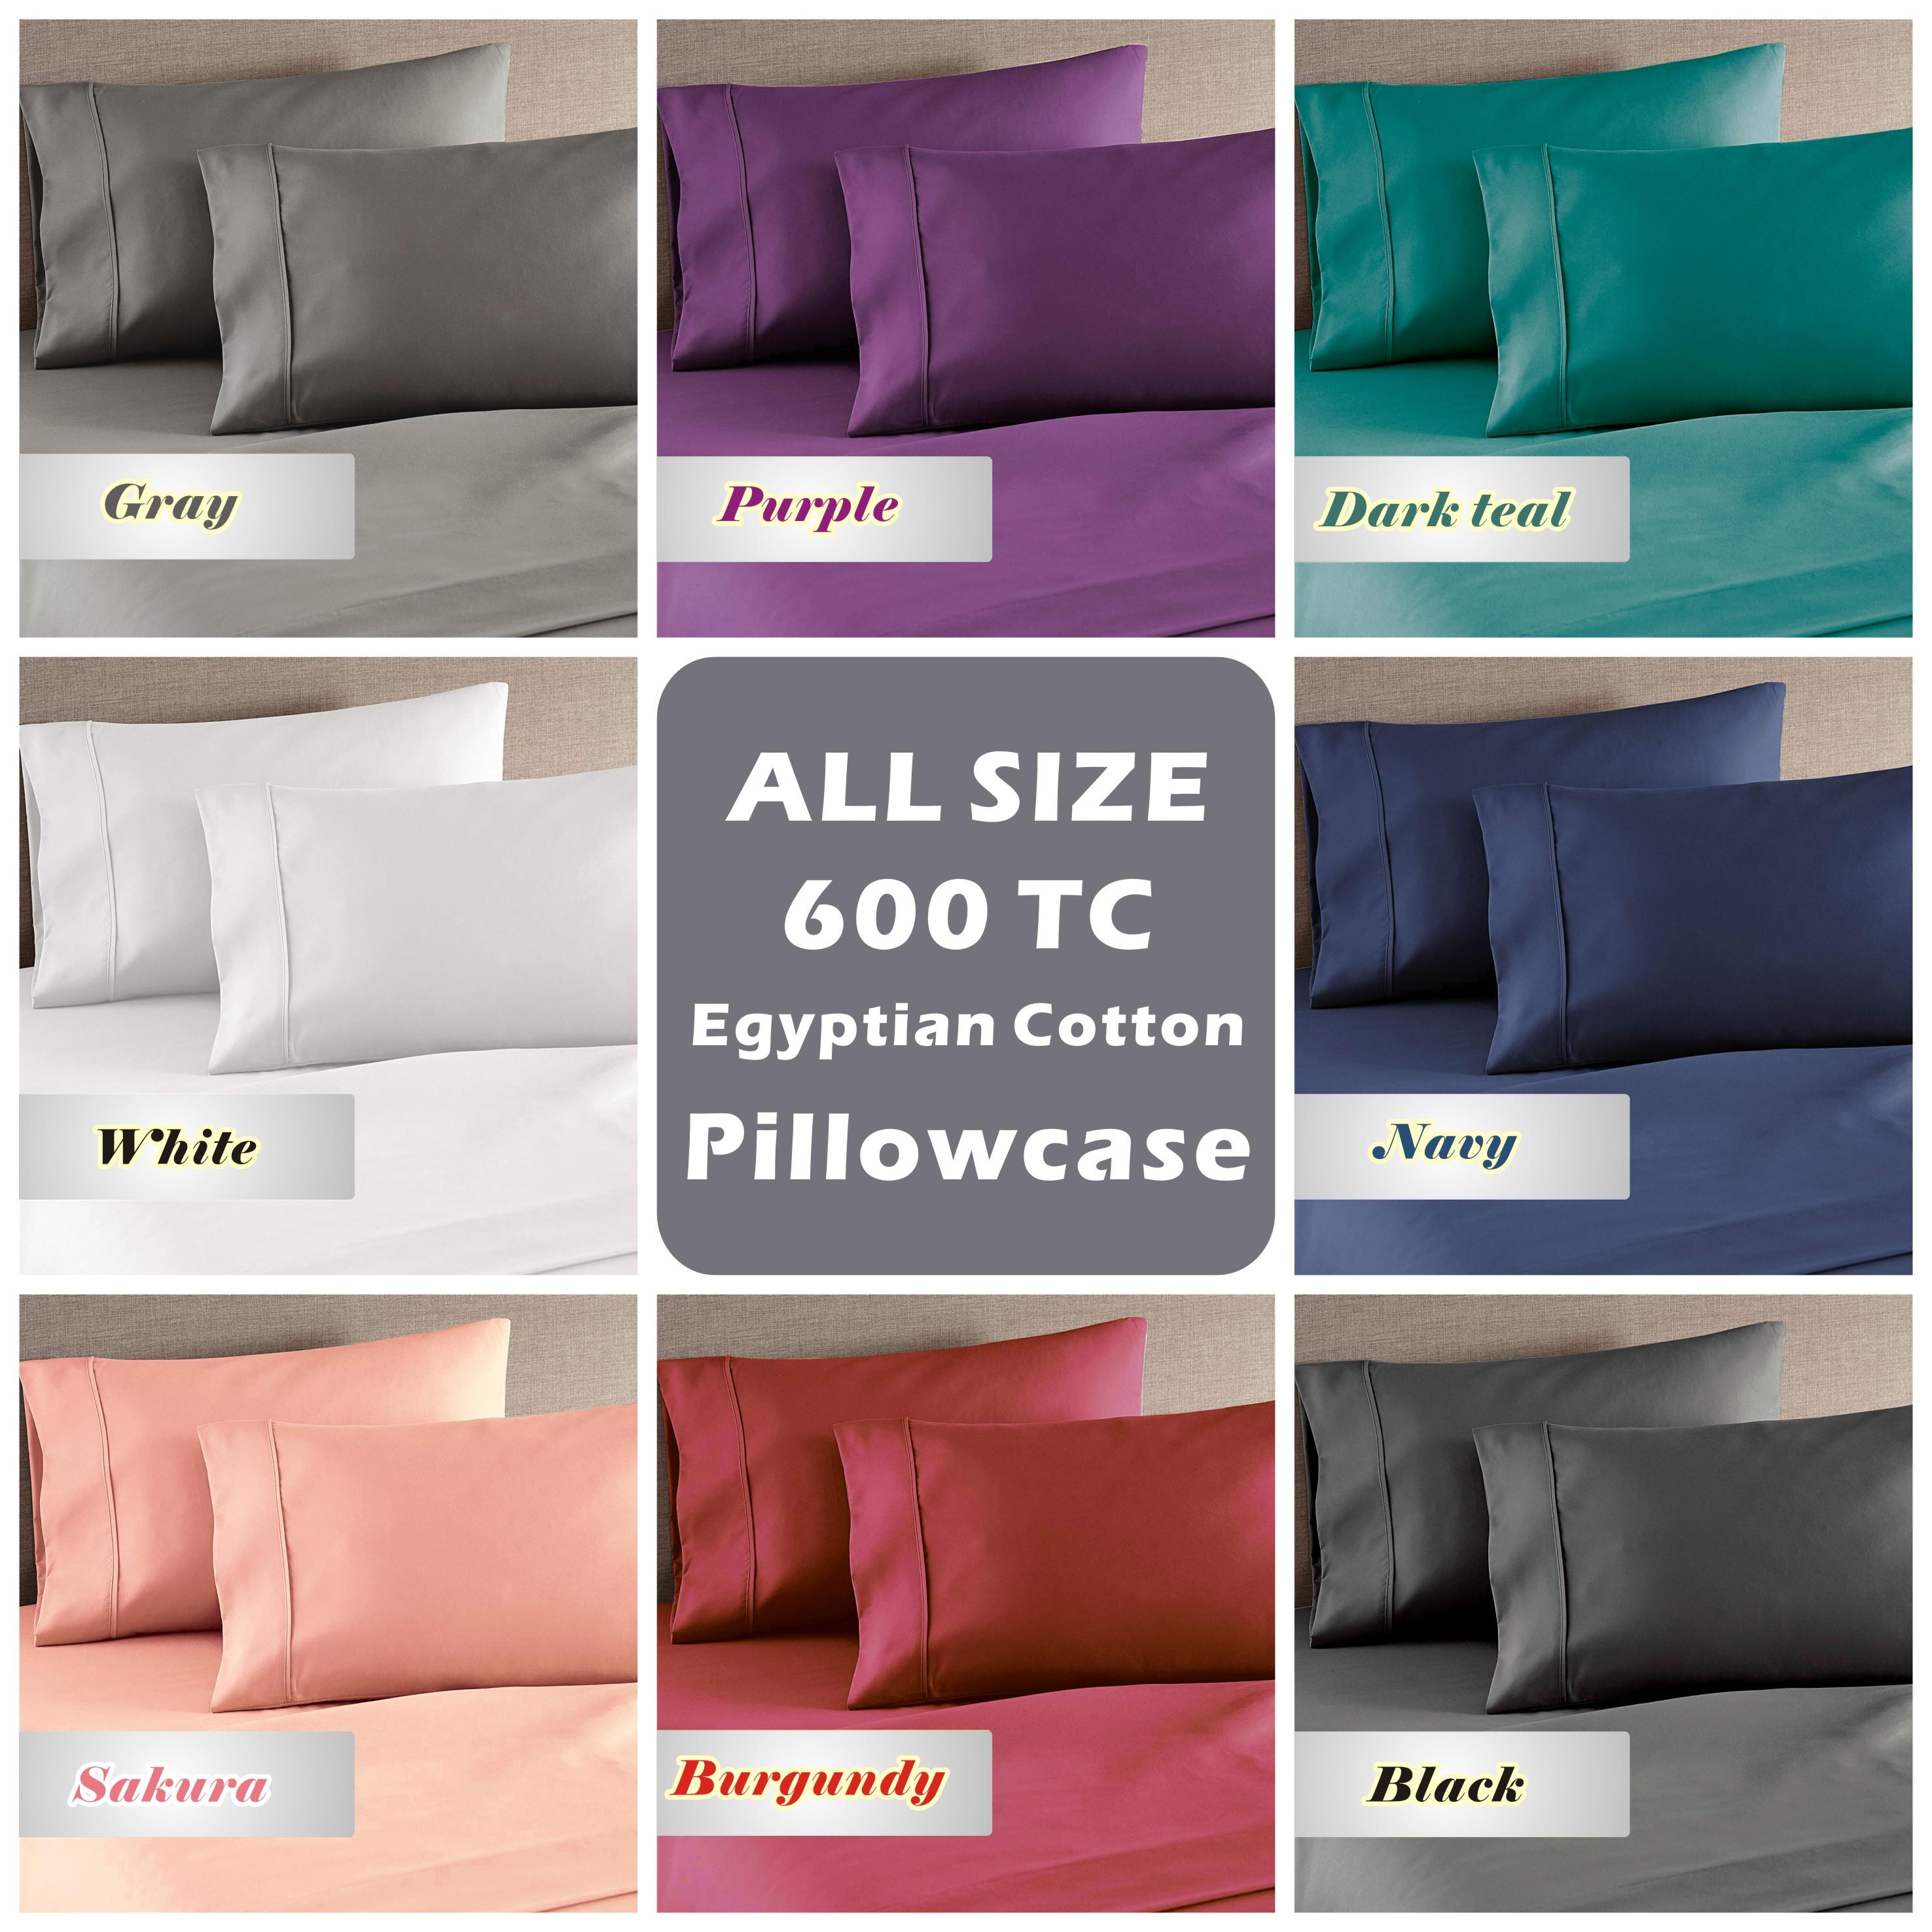 Details About Genuine 600tc Combed Natura Egyptian Cotton Pillow Cases For Bed Sheet 1 Piece